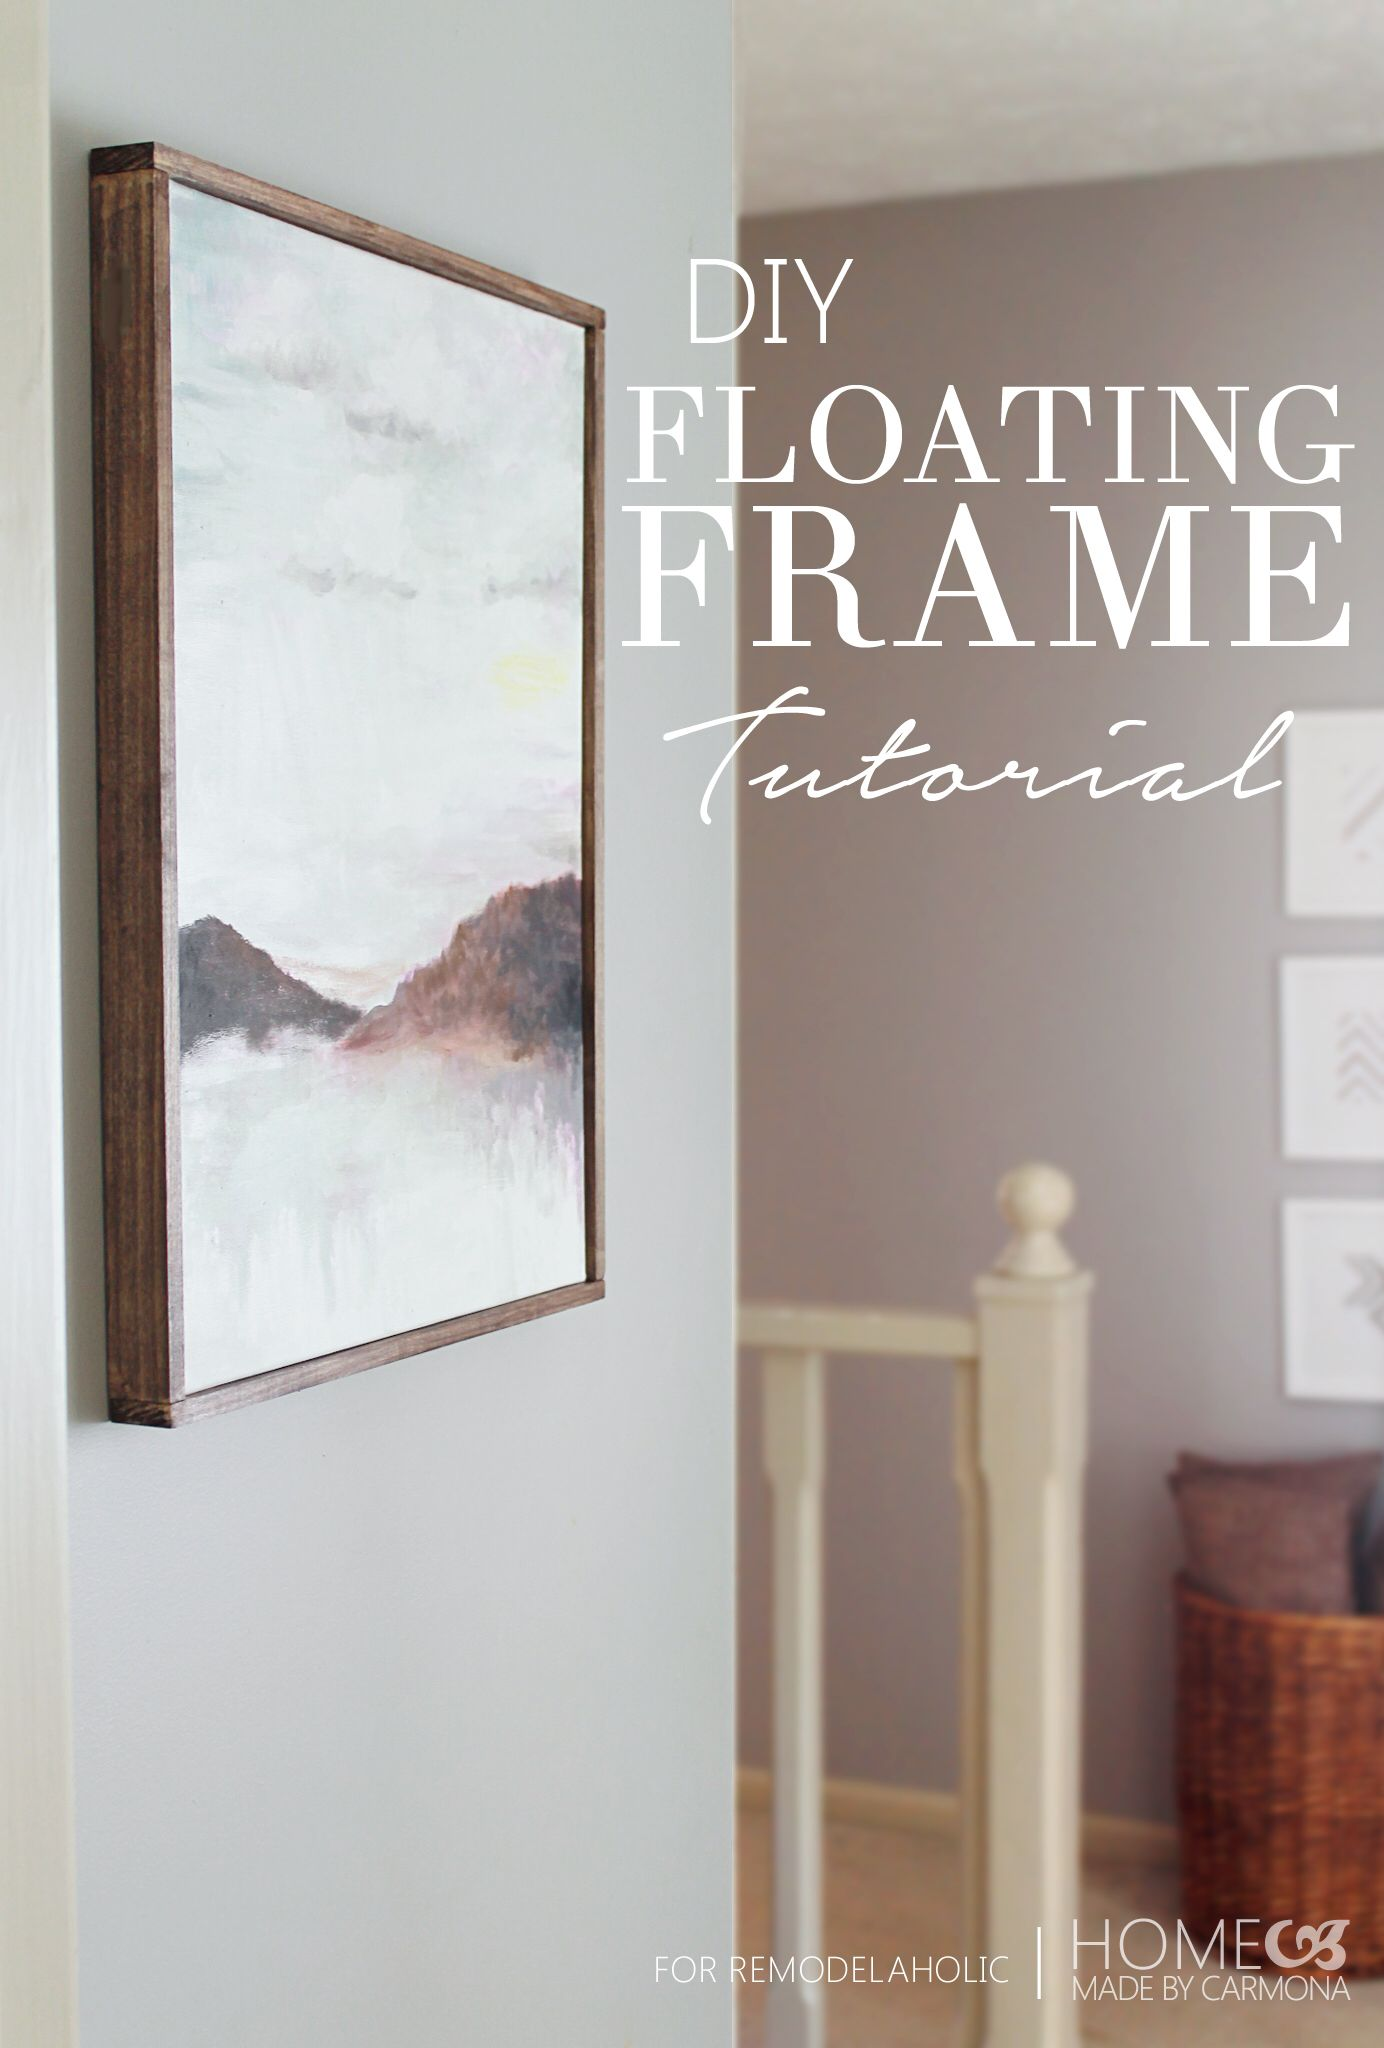 Tutorial: Chic Floating Frame for a Canvas | DIY to try ...